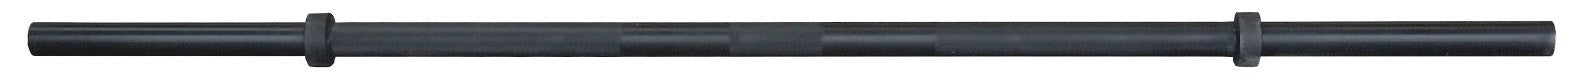 "Strength Shop SOLID STEEL 60mm / 2.4"" Strongman Axle Bar - FREE SHIPPING - Strength Shop USA"